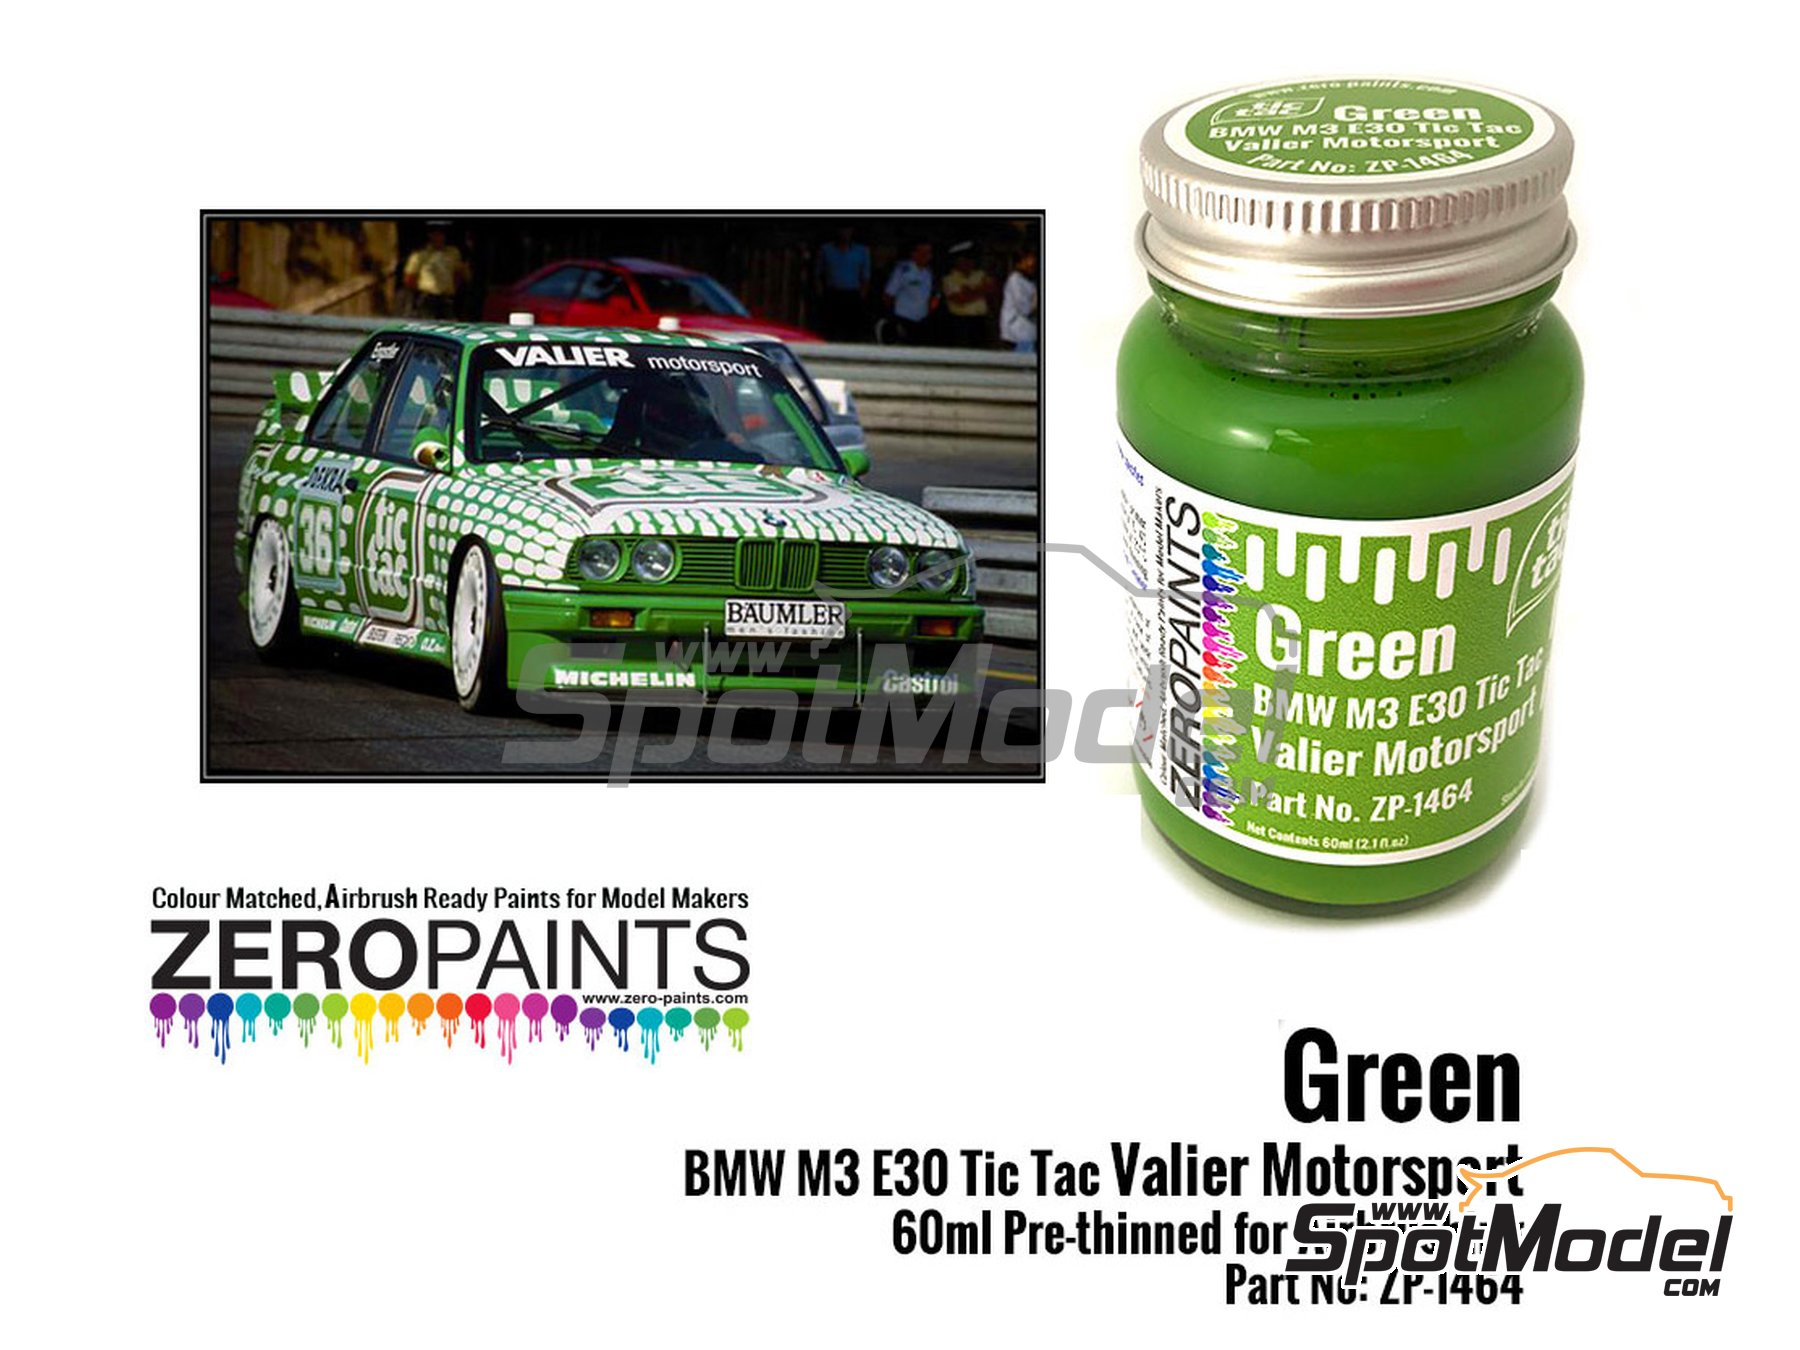 Image 1: Green BMW M3 E30 Tic Tac Valier Motorsport | Paint manufactured by Zero Paints (ref. ZP-1464)